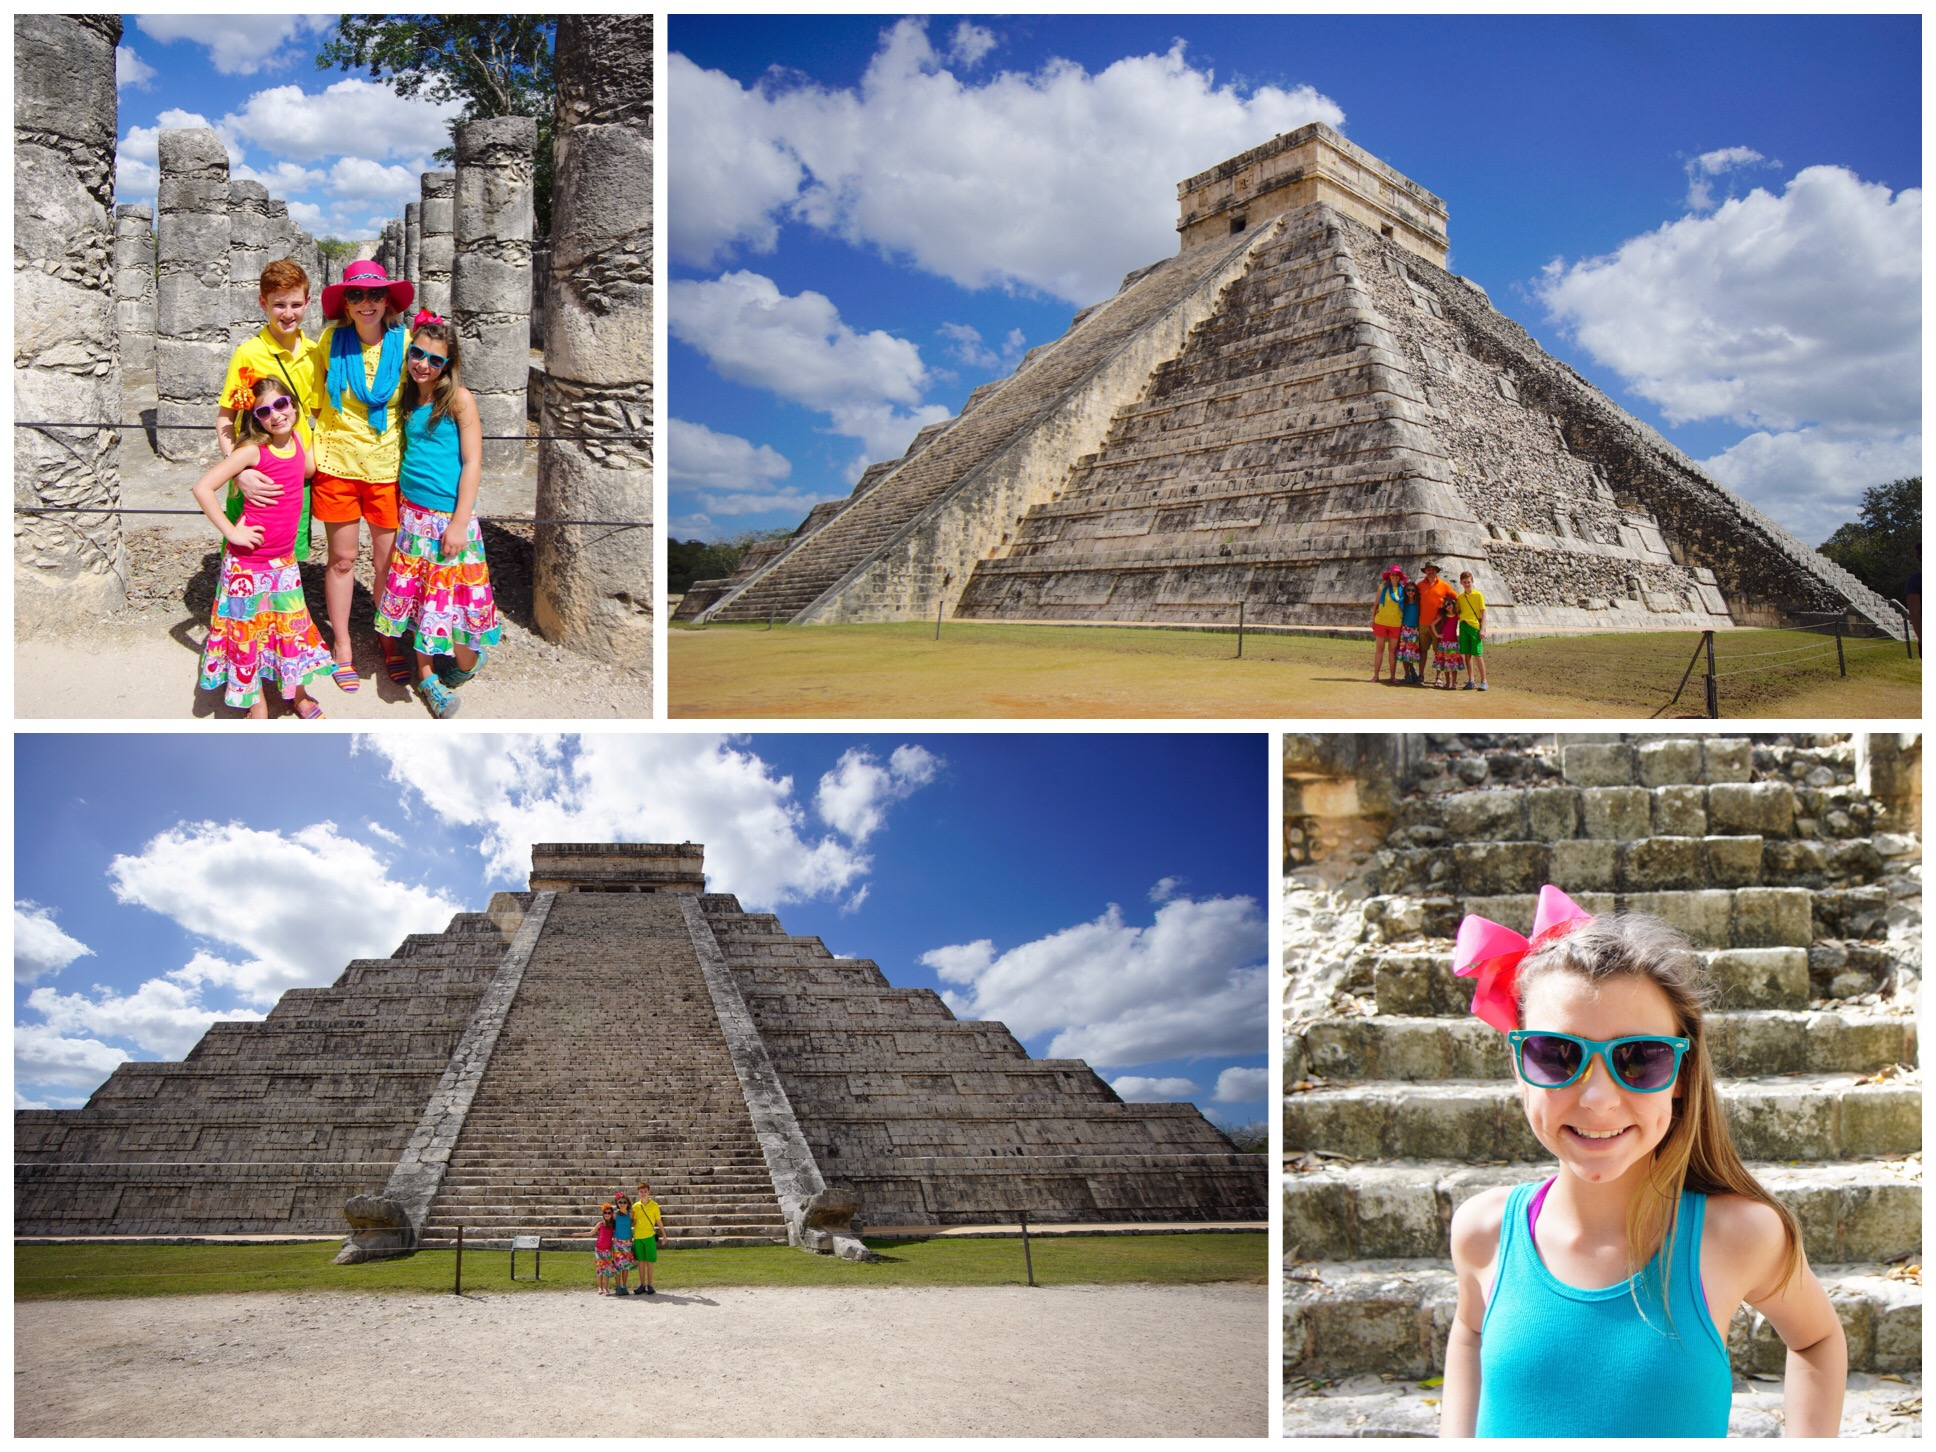 Mexico's Riviera Maya region is the perfect family vacation destination. From beautiful beach resorts to amazing eco-adventure theme parks, discover all that there is to see and do in Playa del Carmen with kids.